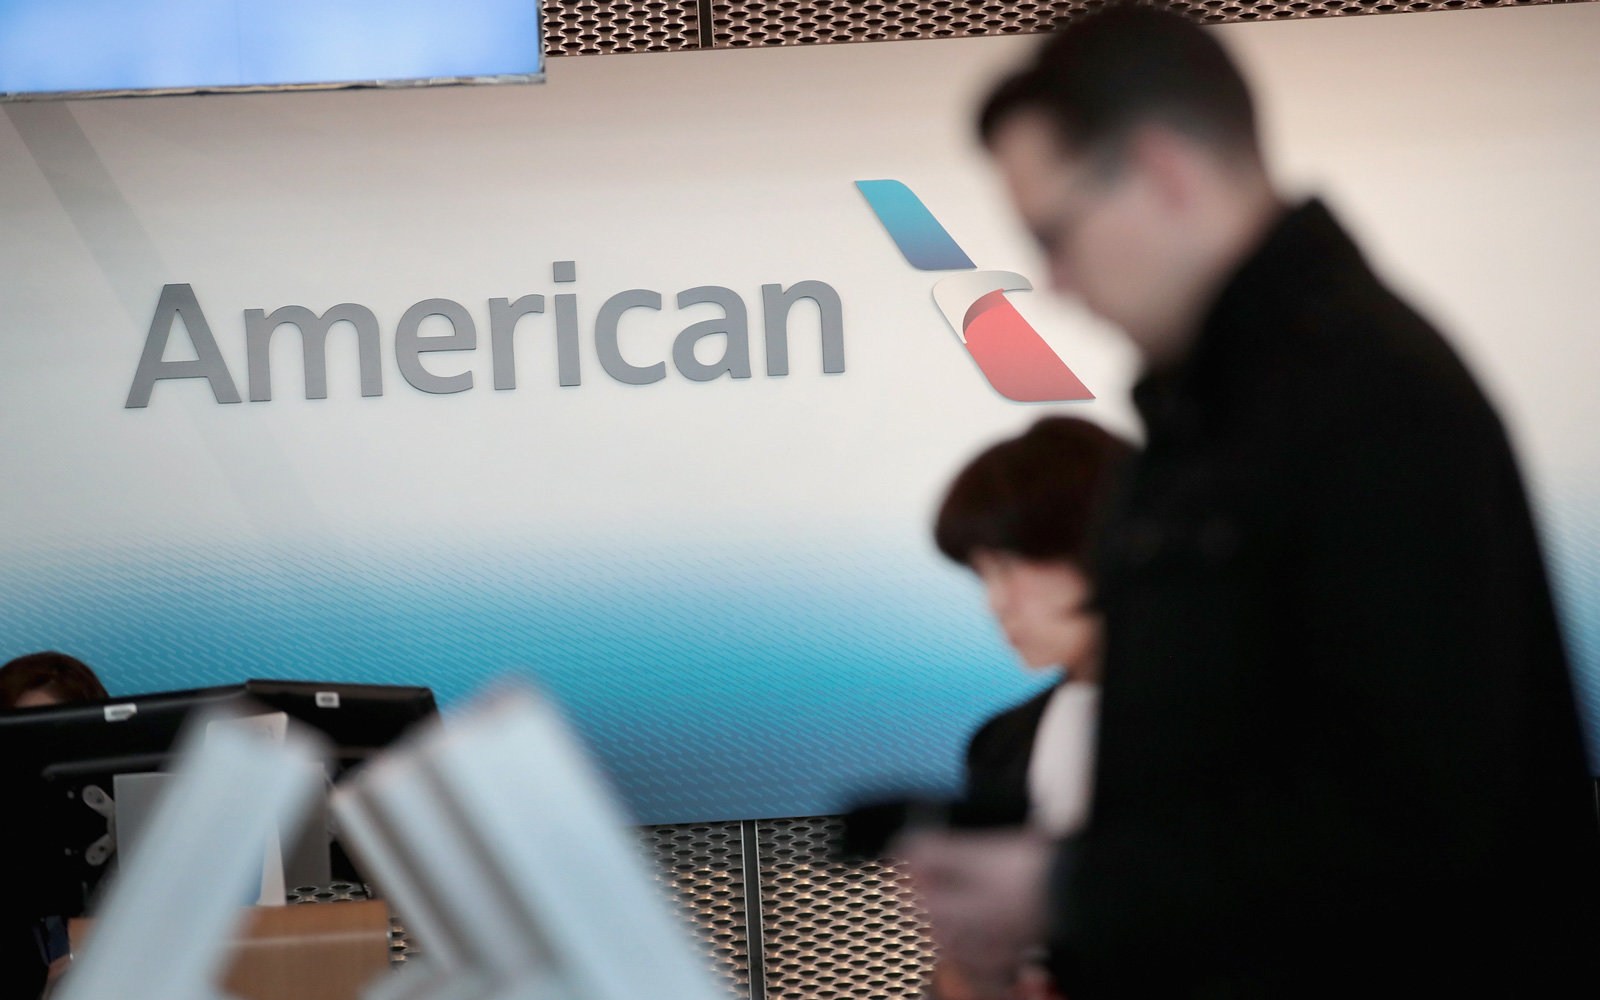 American Airlines is adding racial bias training for employees.